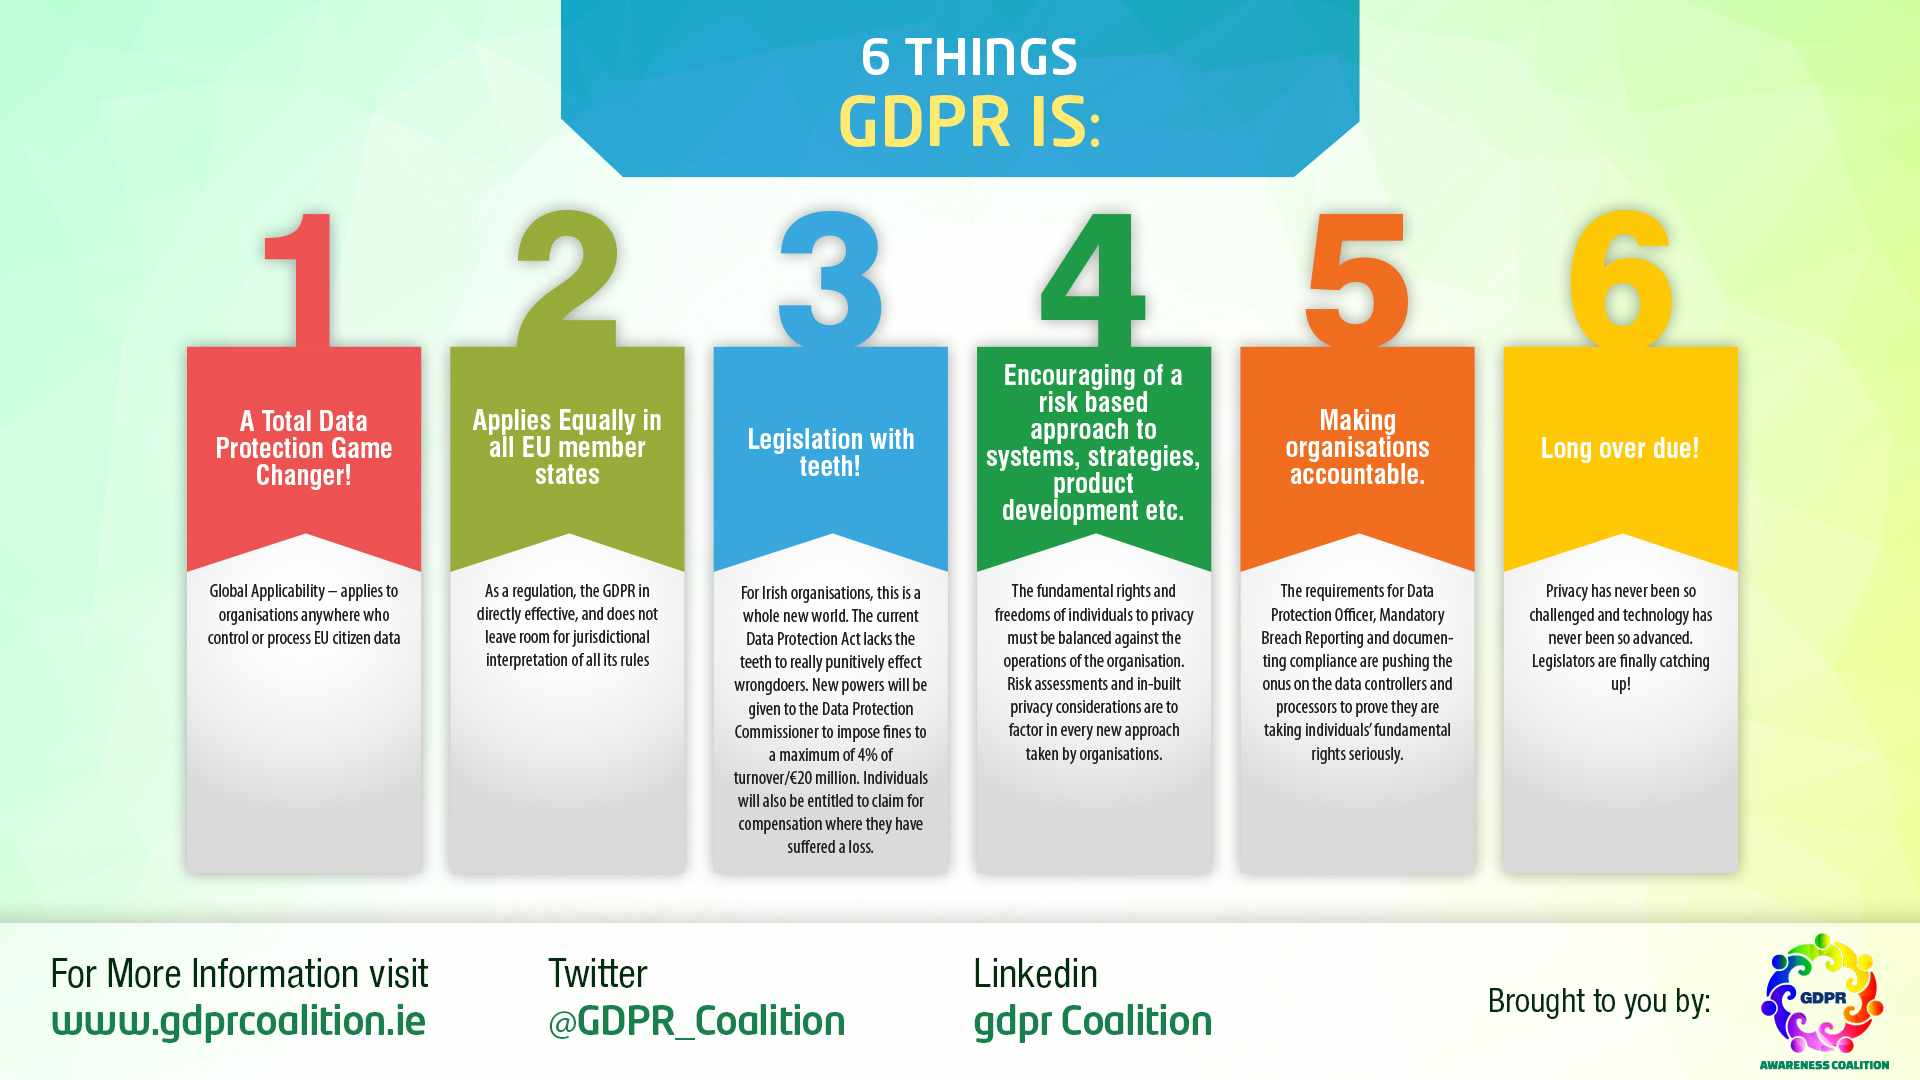 6 things GDPR is